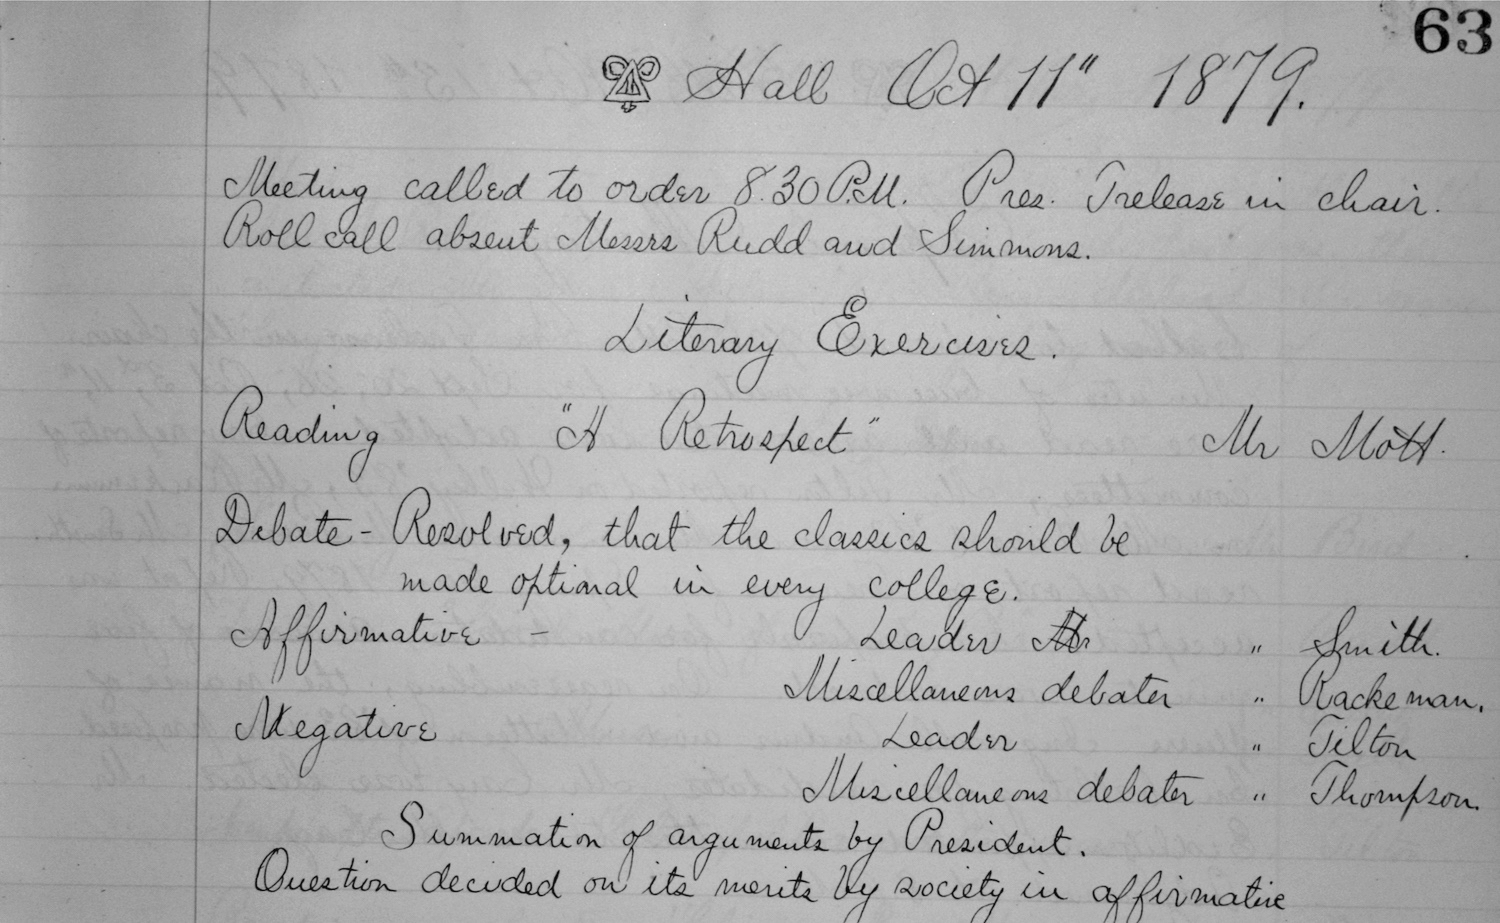 Chapter Meeting Minutes 1879